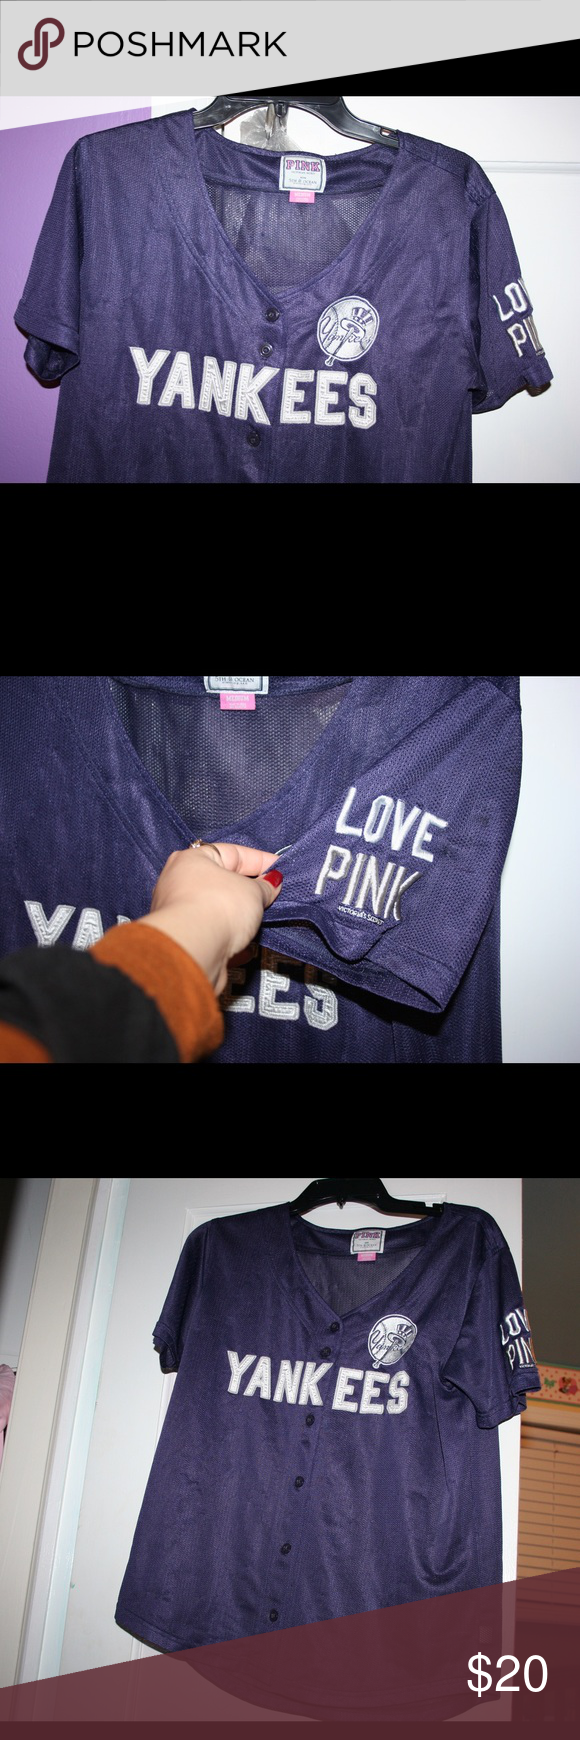 Victoria Secret PINK Yankees jersey Victoria secret PINK Yankees jersey. Supposed to be sleepwear but you can always put a tank top under and wear it as a real shirt. Tag says medium but can probably fit a large. Super cozy and cute. PINK Victoria's Secret Tops Tees - Short Sleeve